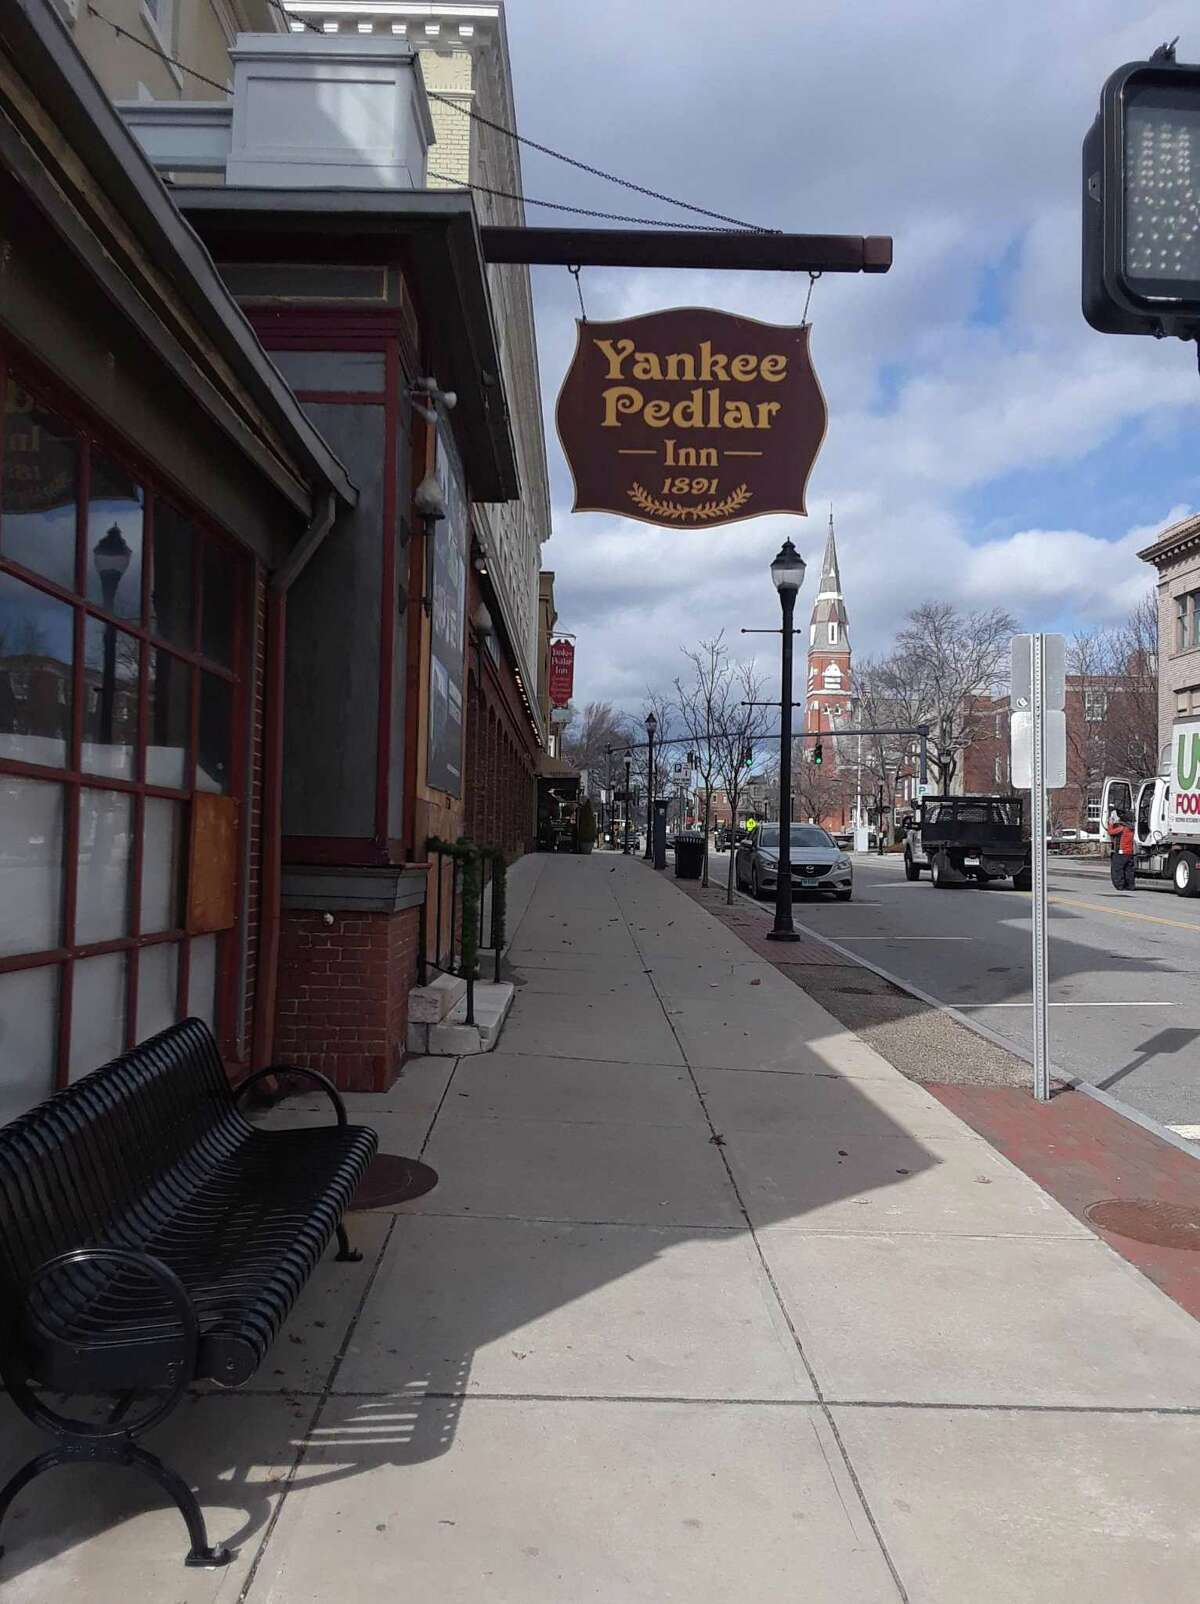 The Yankee Pedlar Inn, which was sold to Jayson Hospitality in 2014, remains shuttered on Main Street.